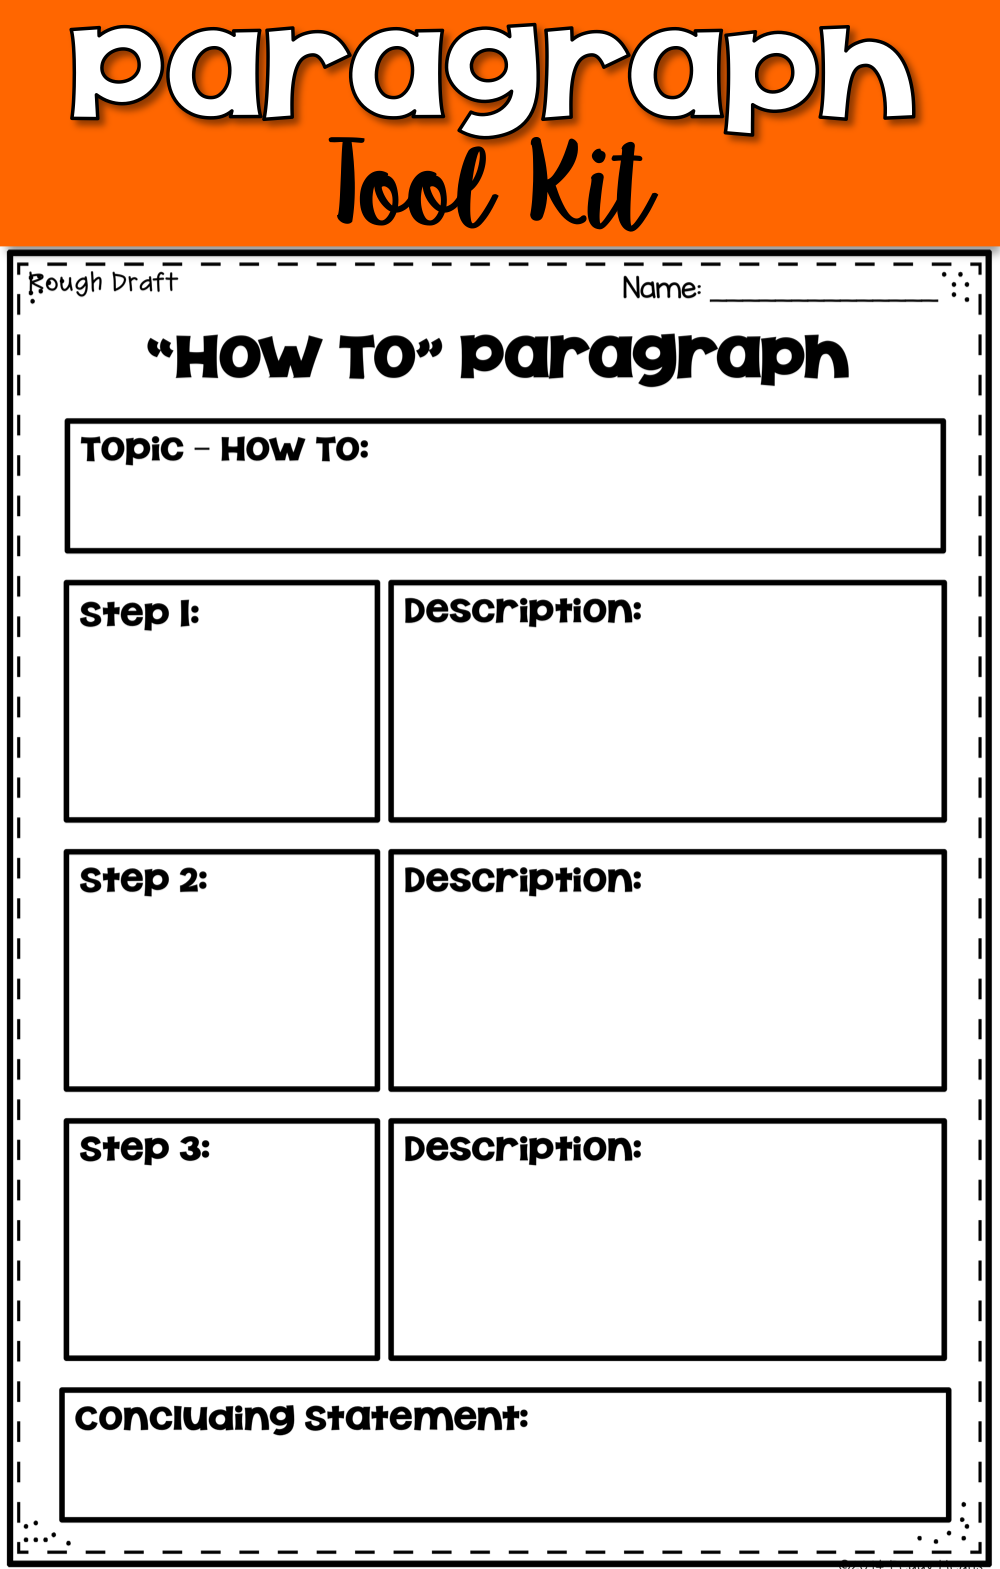 This paragraph writing pack contains differentiated graphic organizers and rubrics that will take your writers through the Writing Process.